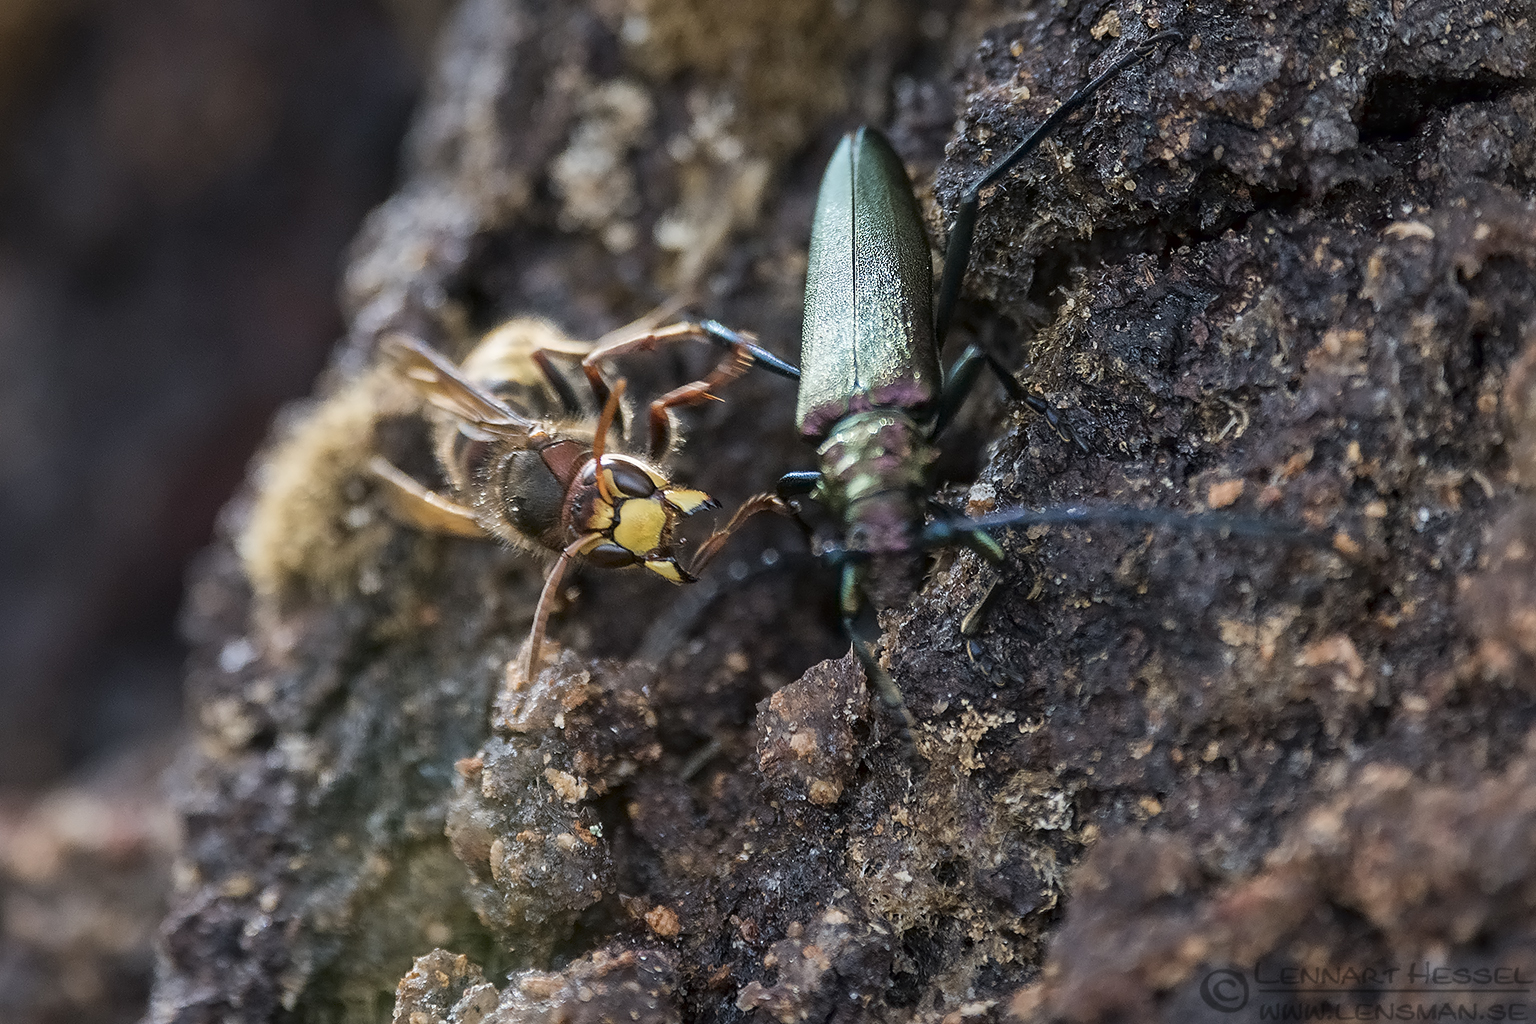 European Hornet attacking Capricorn beetle warm